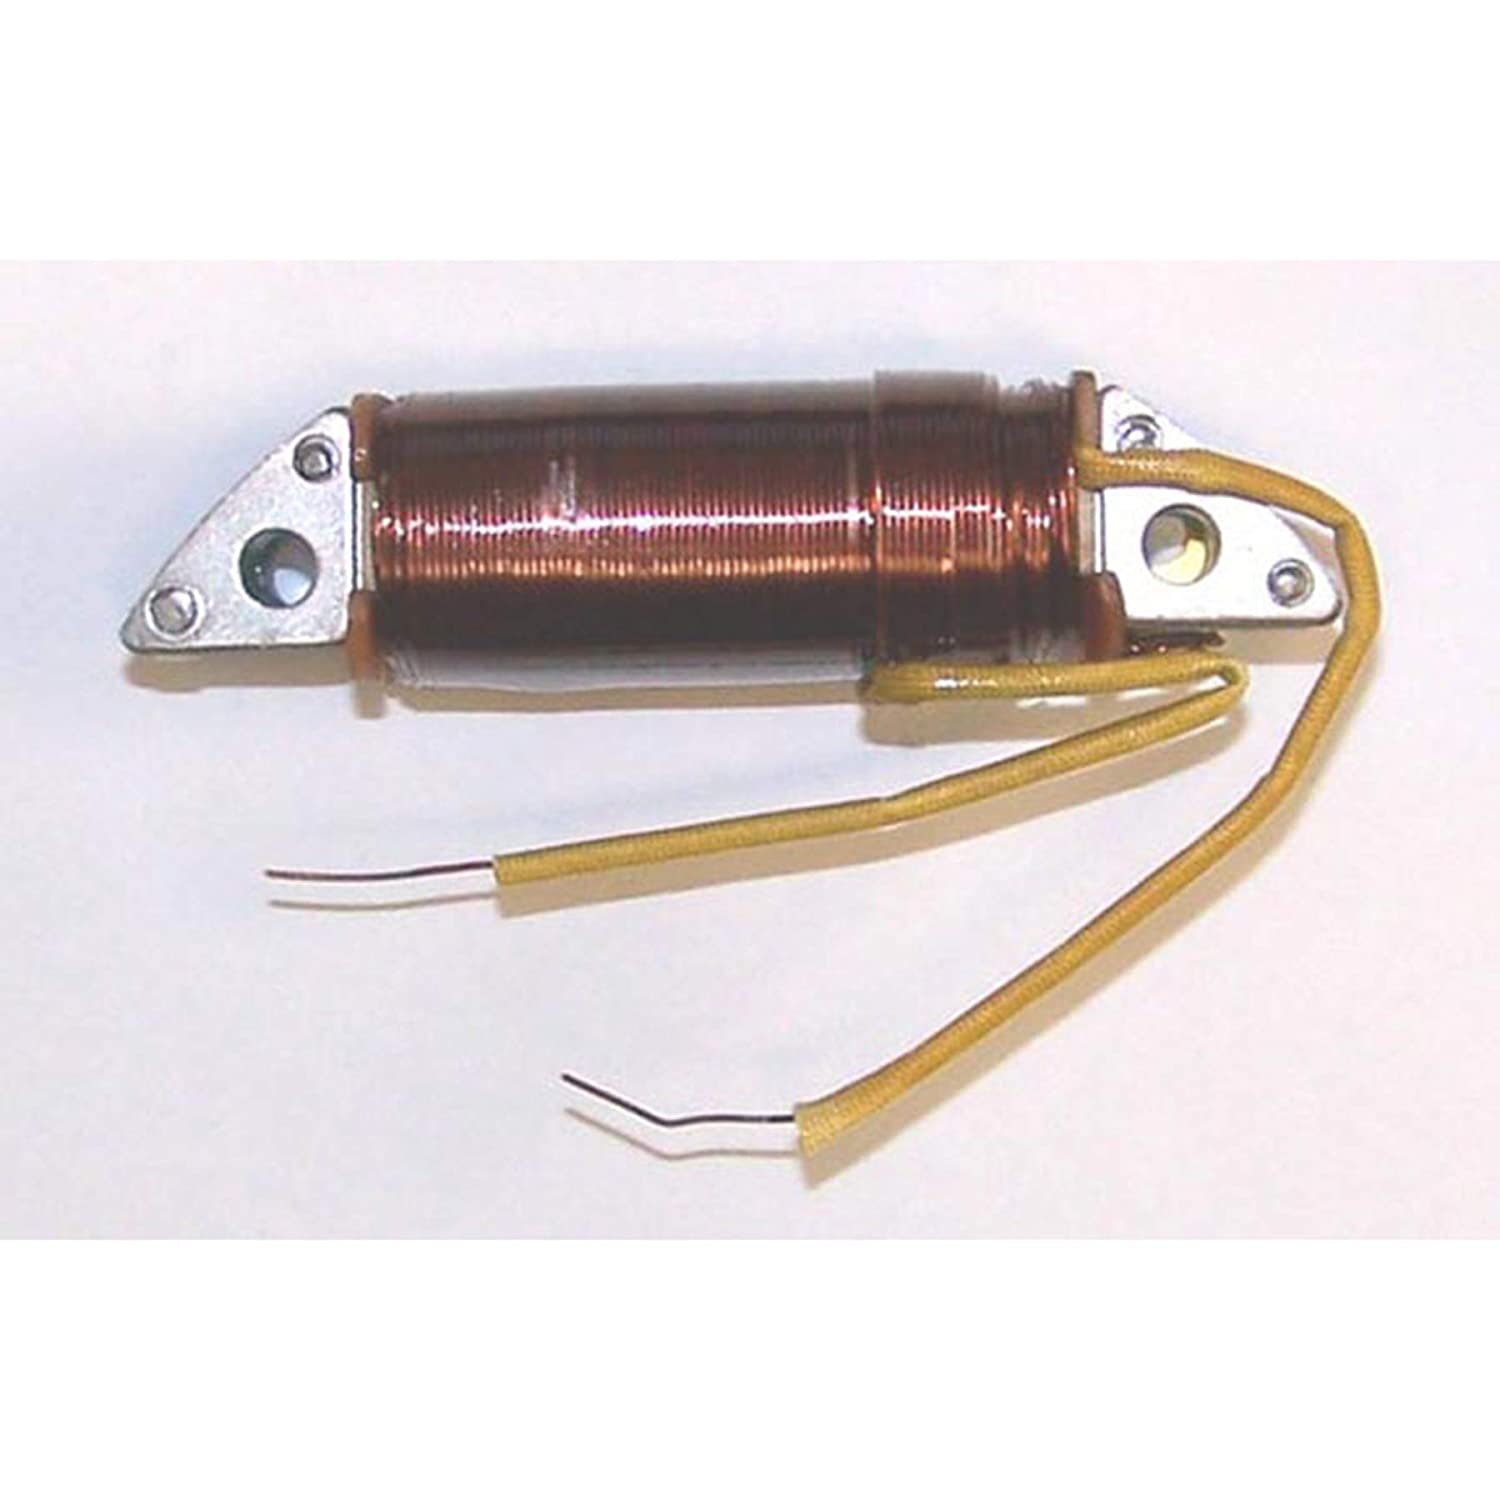 Charge Coil For 1990 Kawasaki JS550 550SX Personal Watercraft